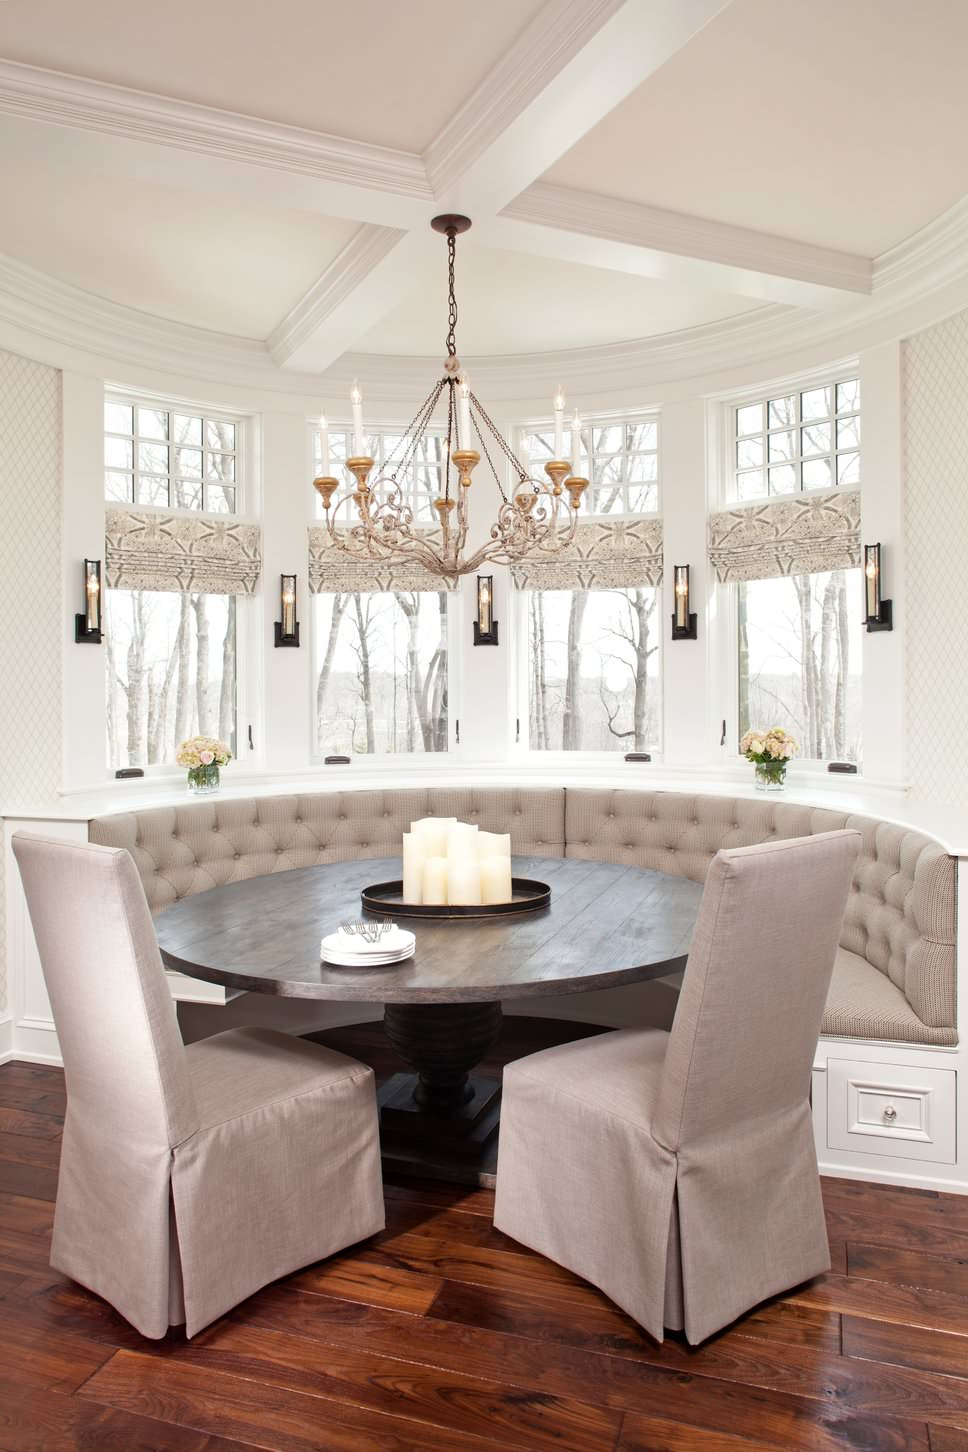 Elegant dining nook boasts a gray tufted built-in seating along with a wooden dining table and skirted high back chairs that are illuminated by candle sconces and a classy chandelier that hung from the round coffered ceiling.